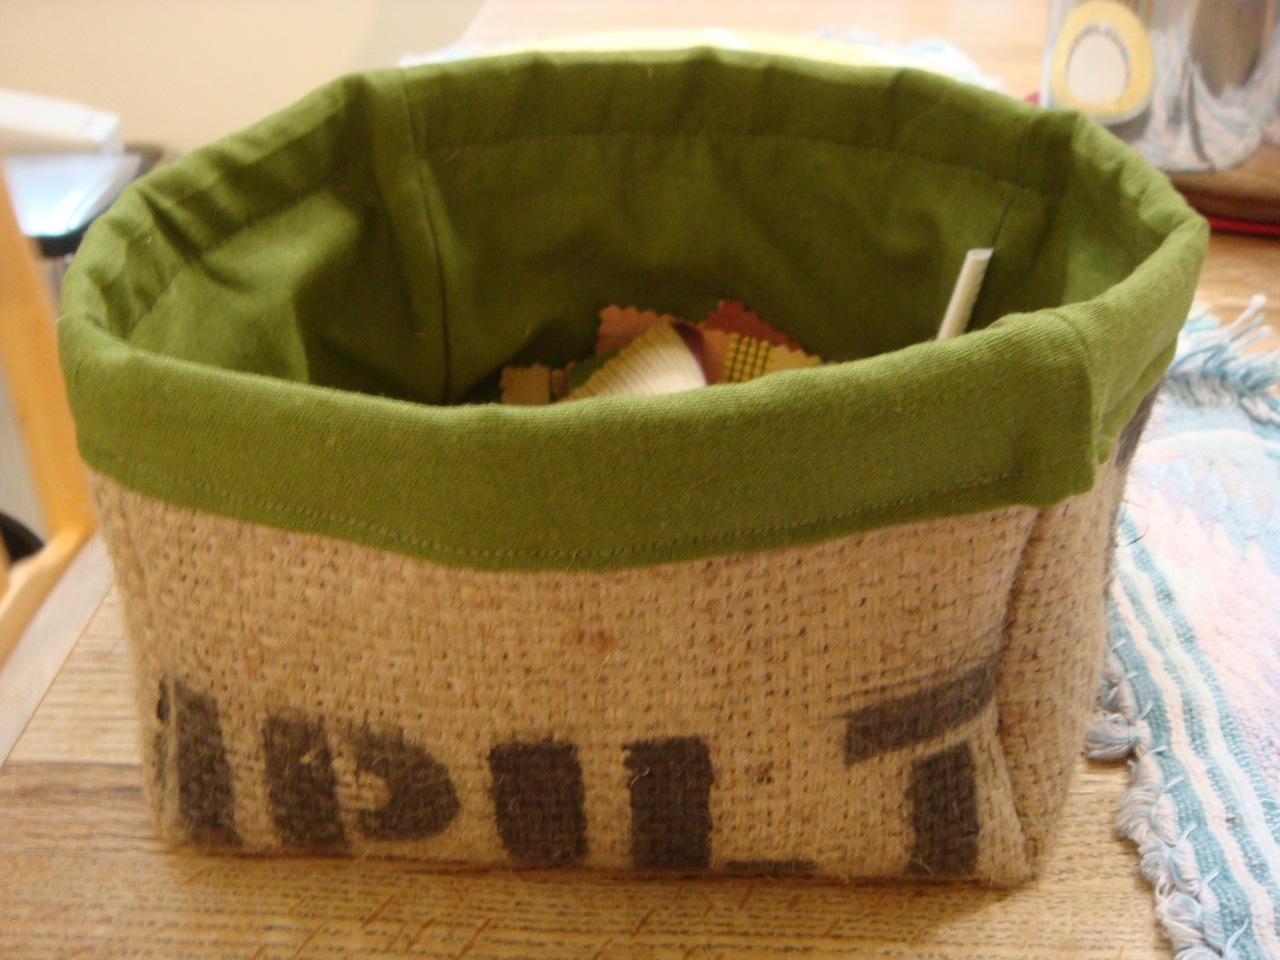 Burlap coffee bag crafts - 5 Awesome Ways To Repurpose A Burlap Coffee Sack Crafting A Green World